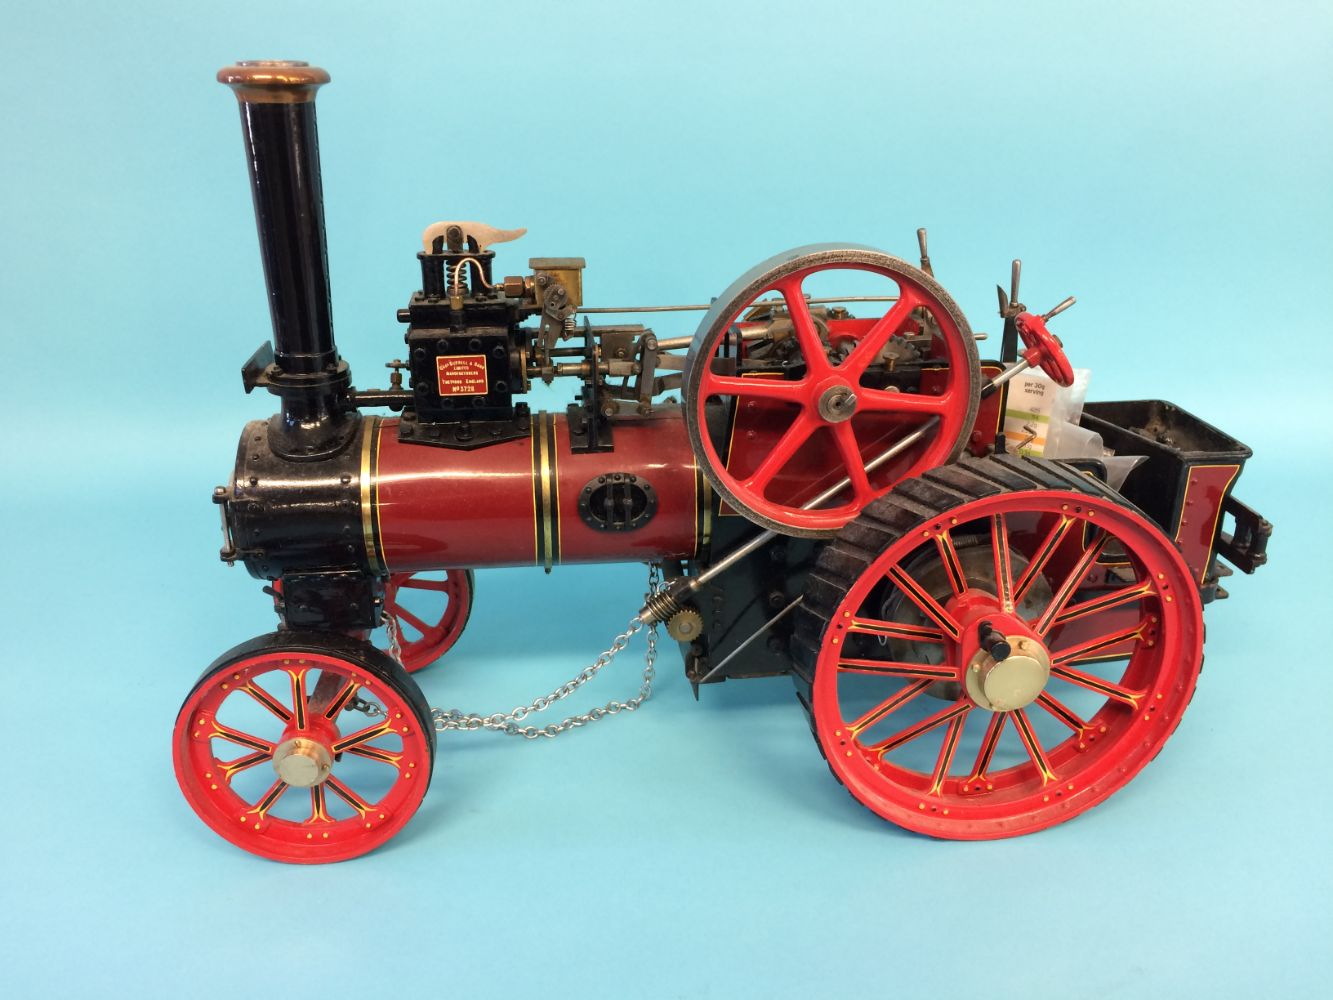 Model Steam & Traction Engine Collection from the late Les Burford, Oxfordshire